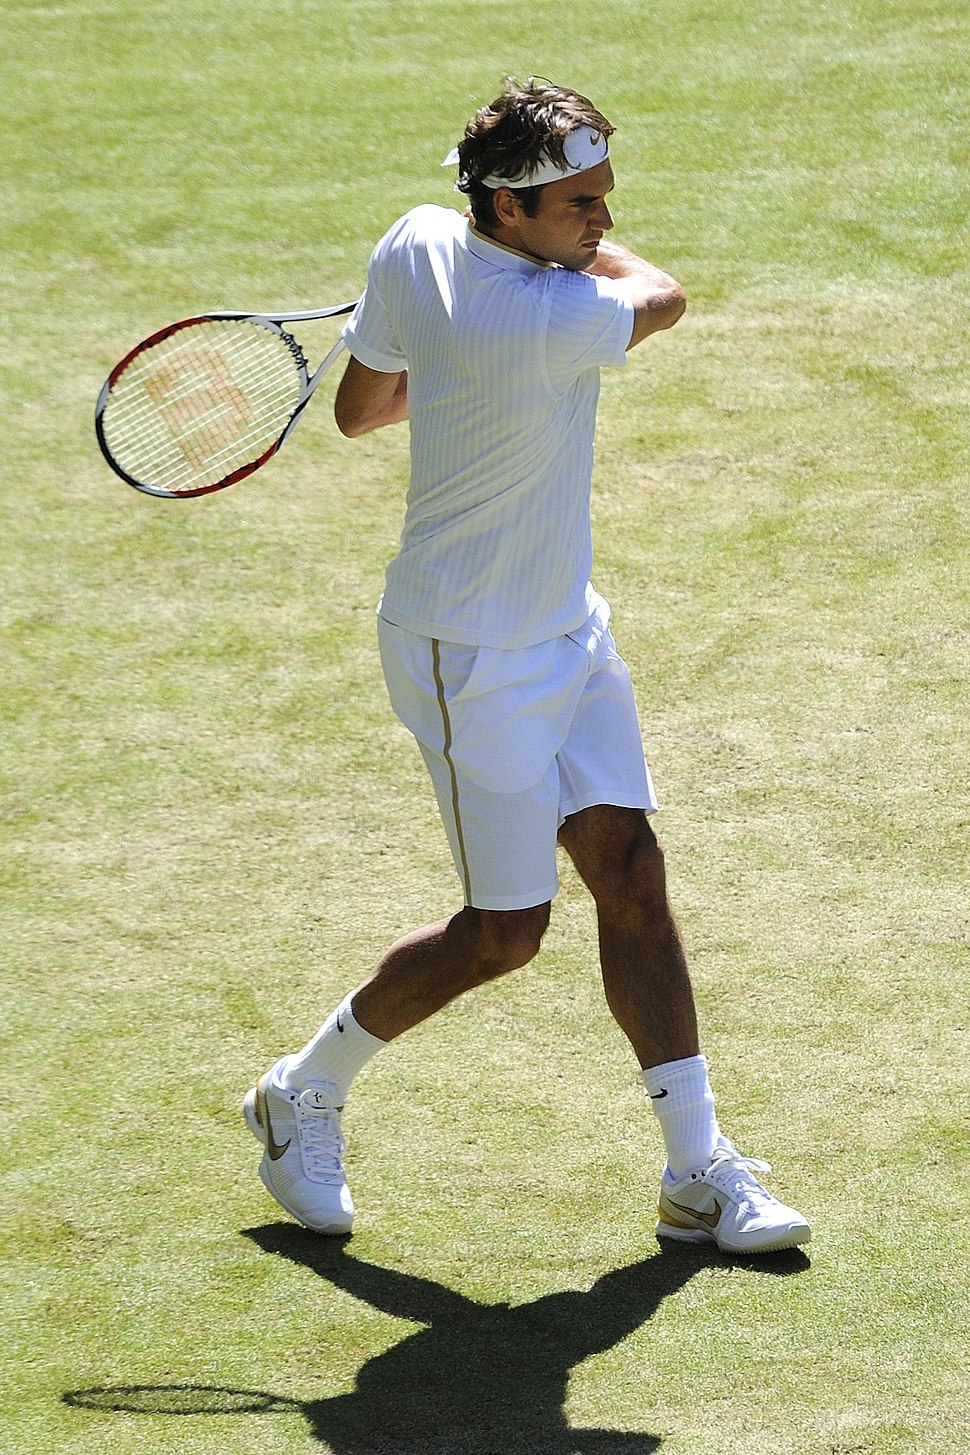 Roger Federer at the 2009 Wimbledon Championships 07